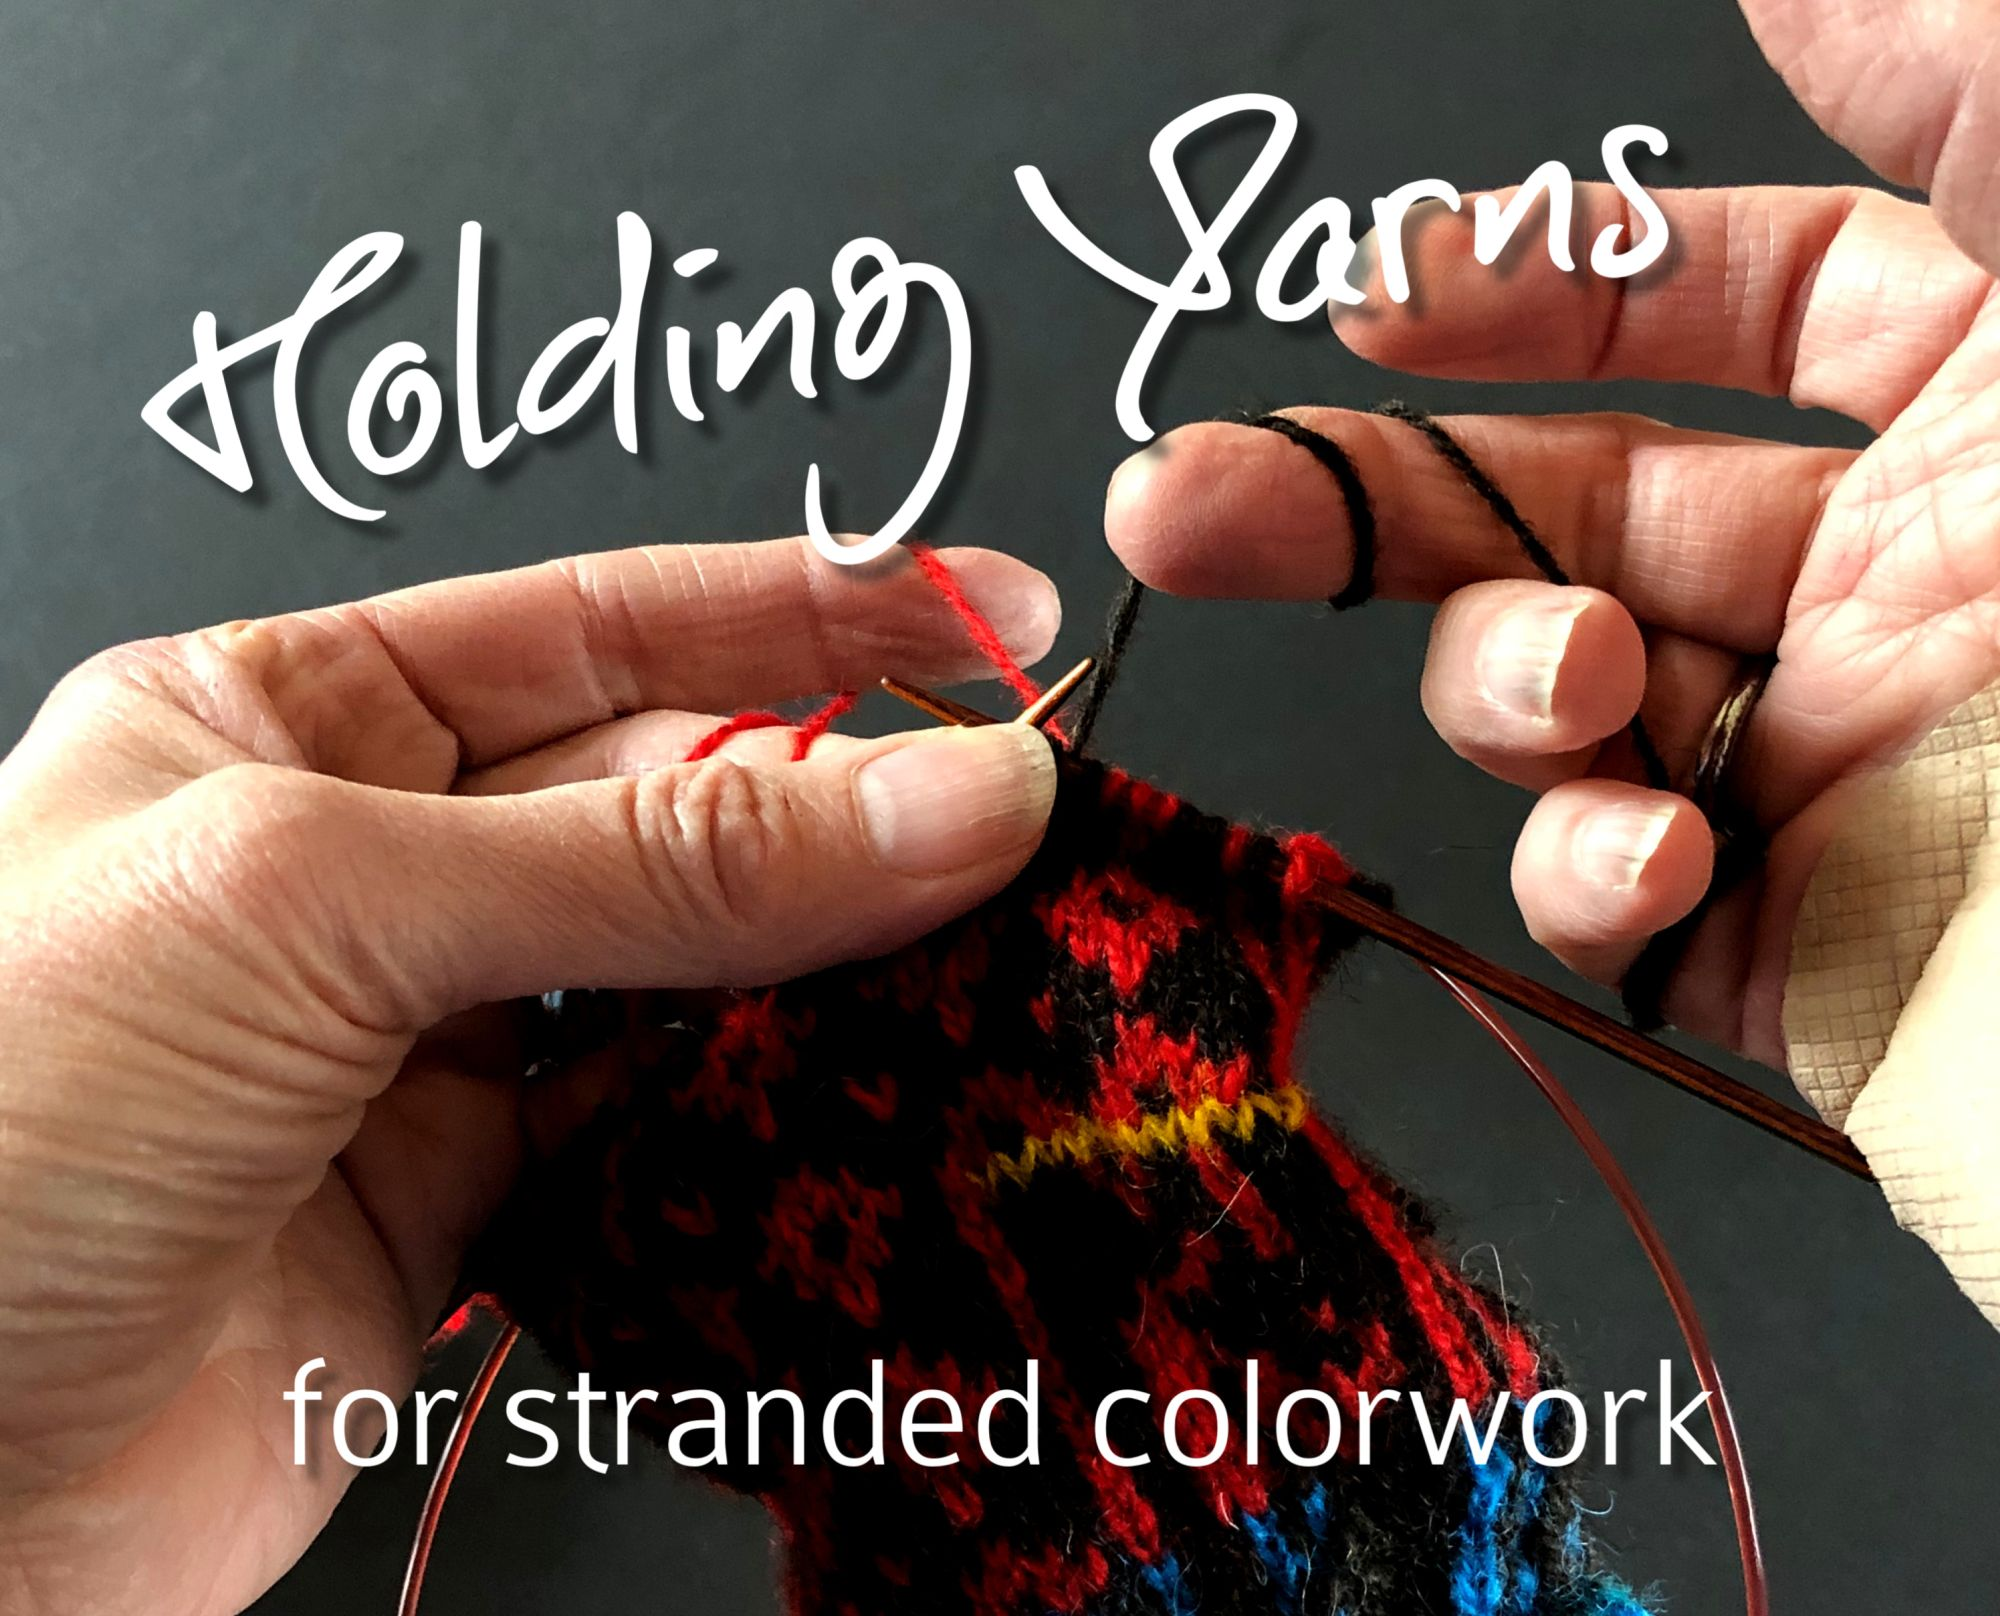 Holding Yarns w/ Two Hands for Stranded Colorwork Knitting – Varian Brandon